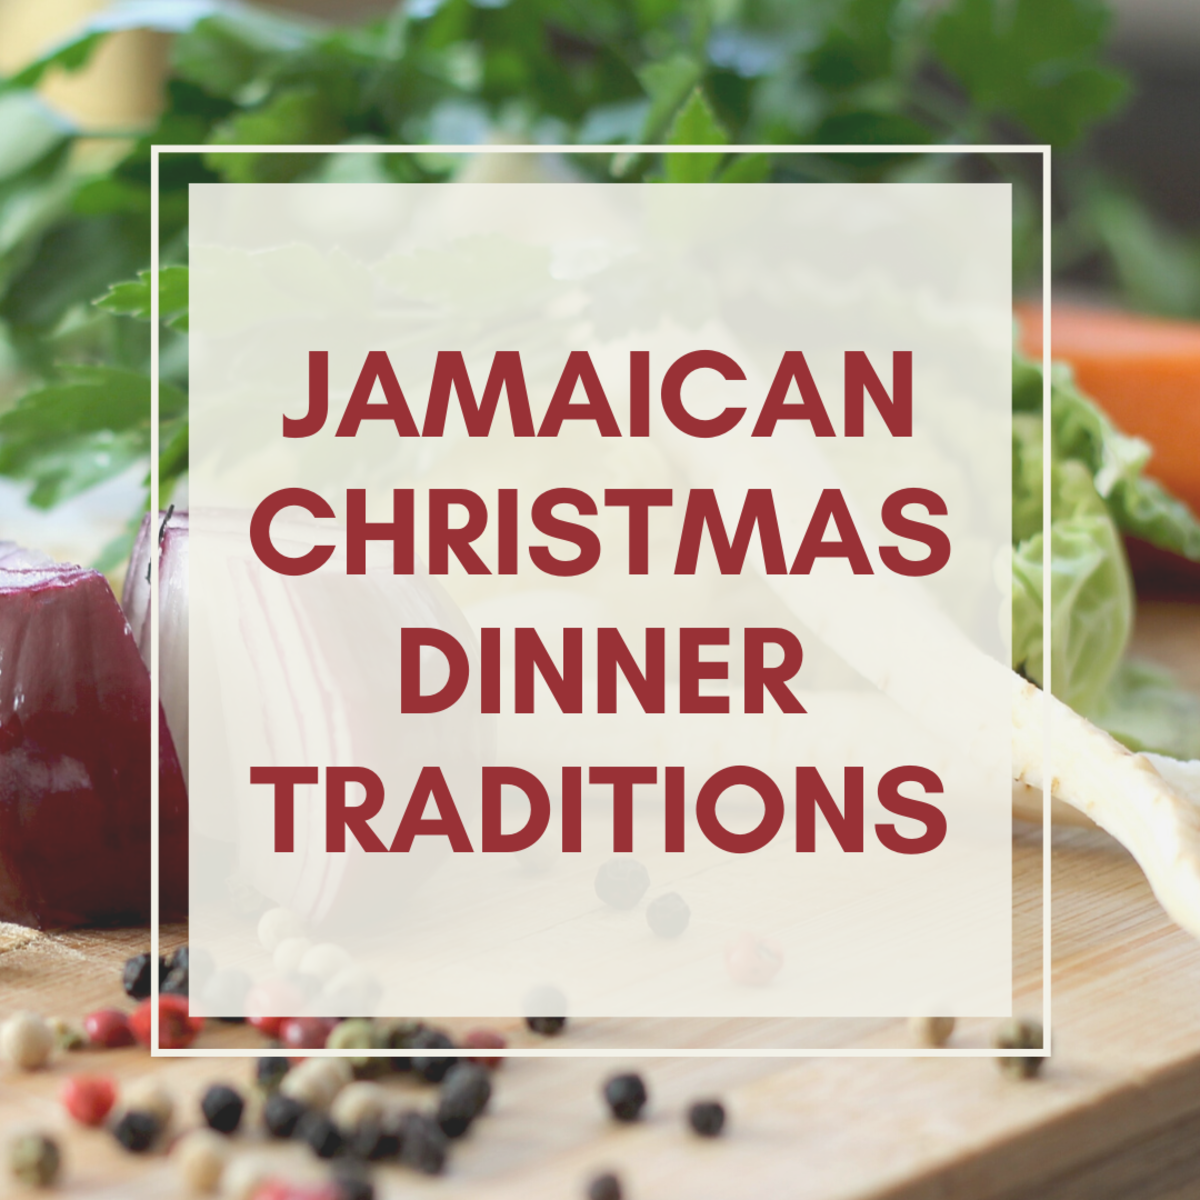 Jamaican Christmas Dinner Menu Ideas